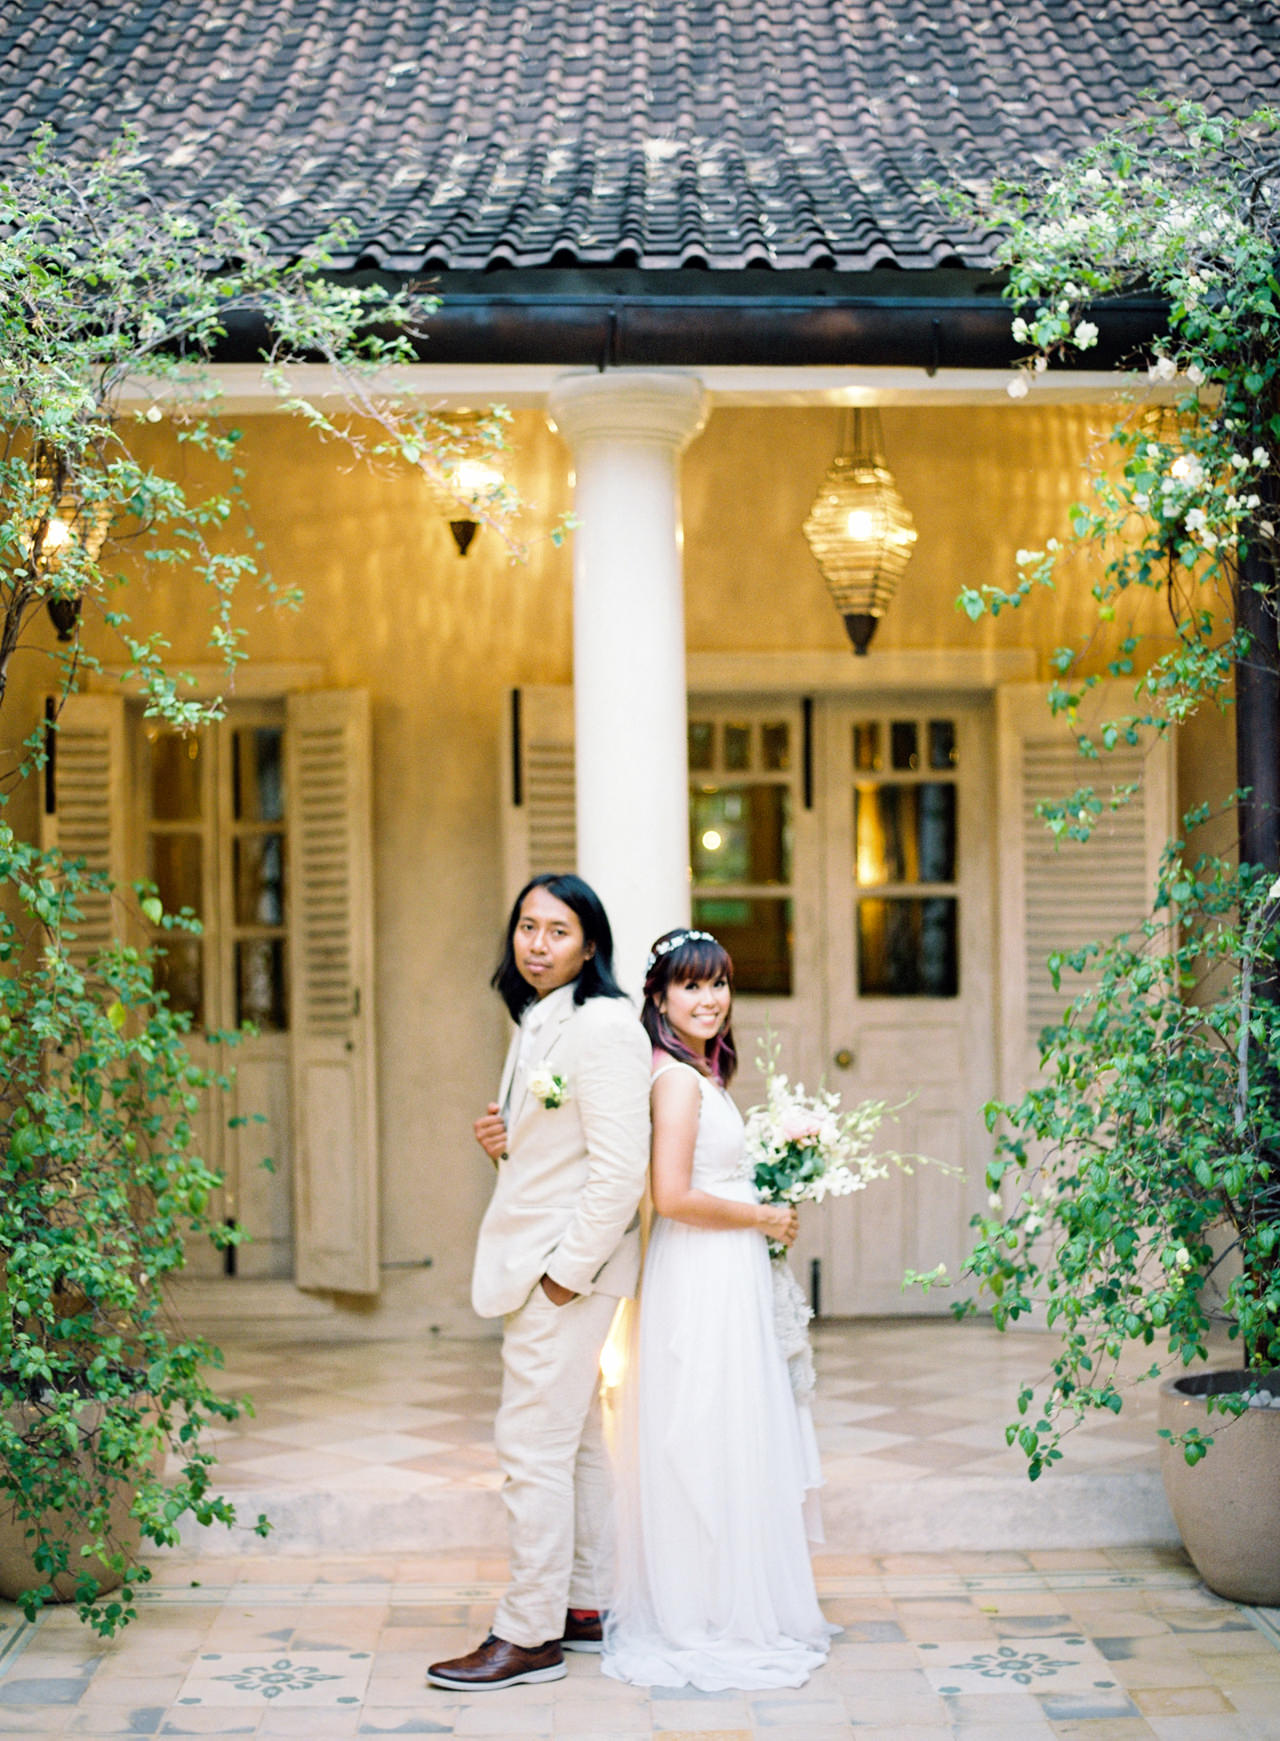 The Wedding of Bayu and Ivony at Gorgeous Bali Wedding Venue 33